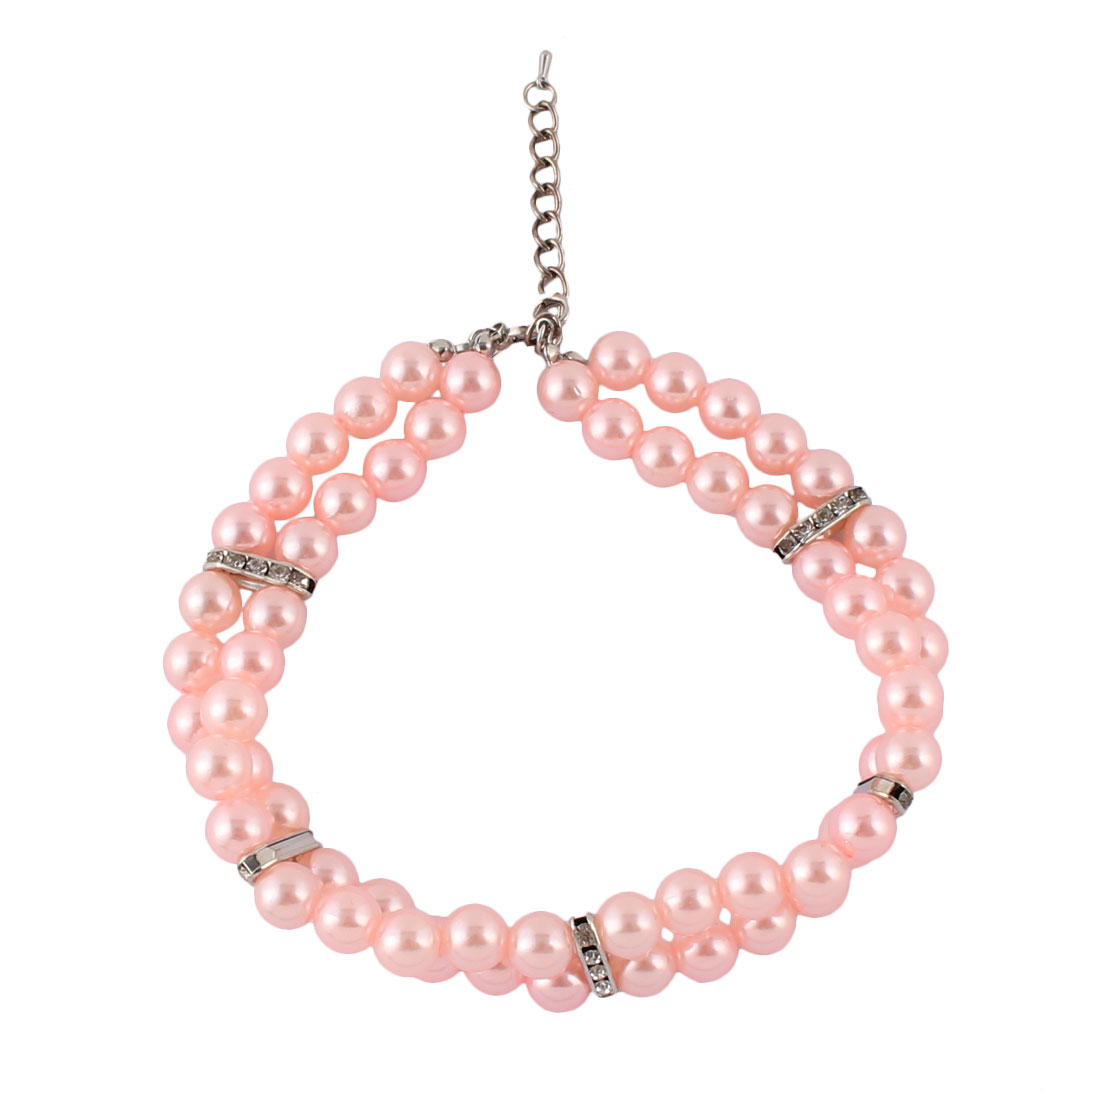 Holiday Cat Plastic Beads Shining Rhinestones Clasp 2 Rows Pet Necklace Light Pink 32-37cm Girth